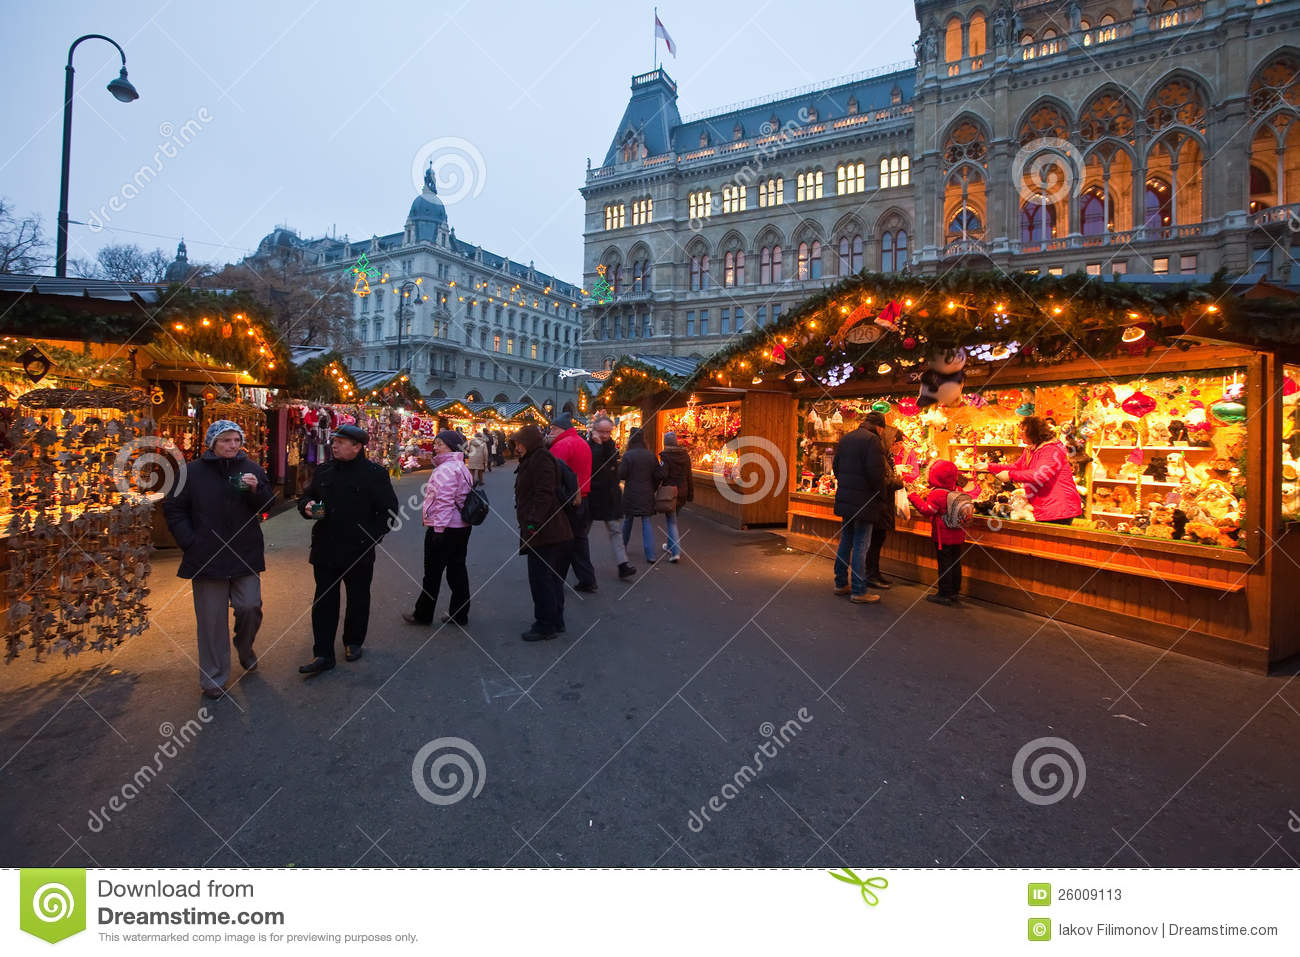 March de no l vienne autriche photo stock ditorial image 26009113 - Marche de noel vienne ...